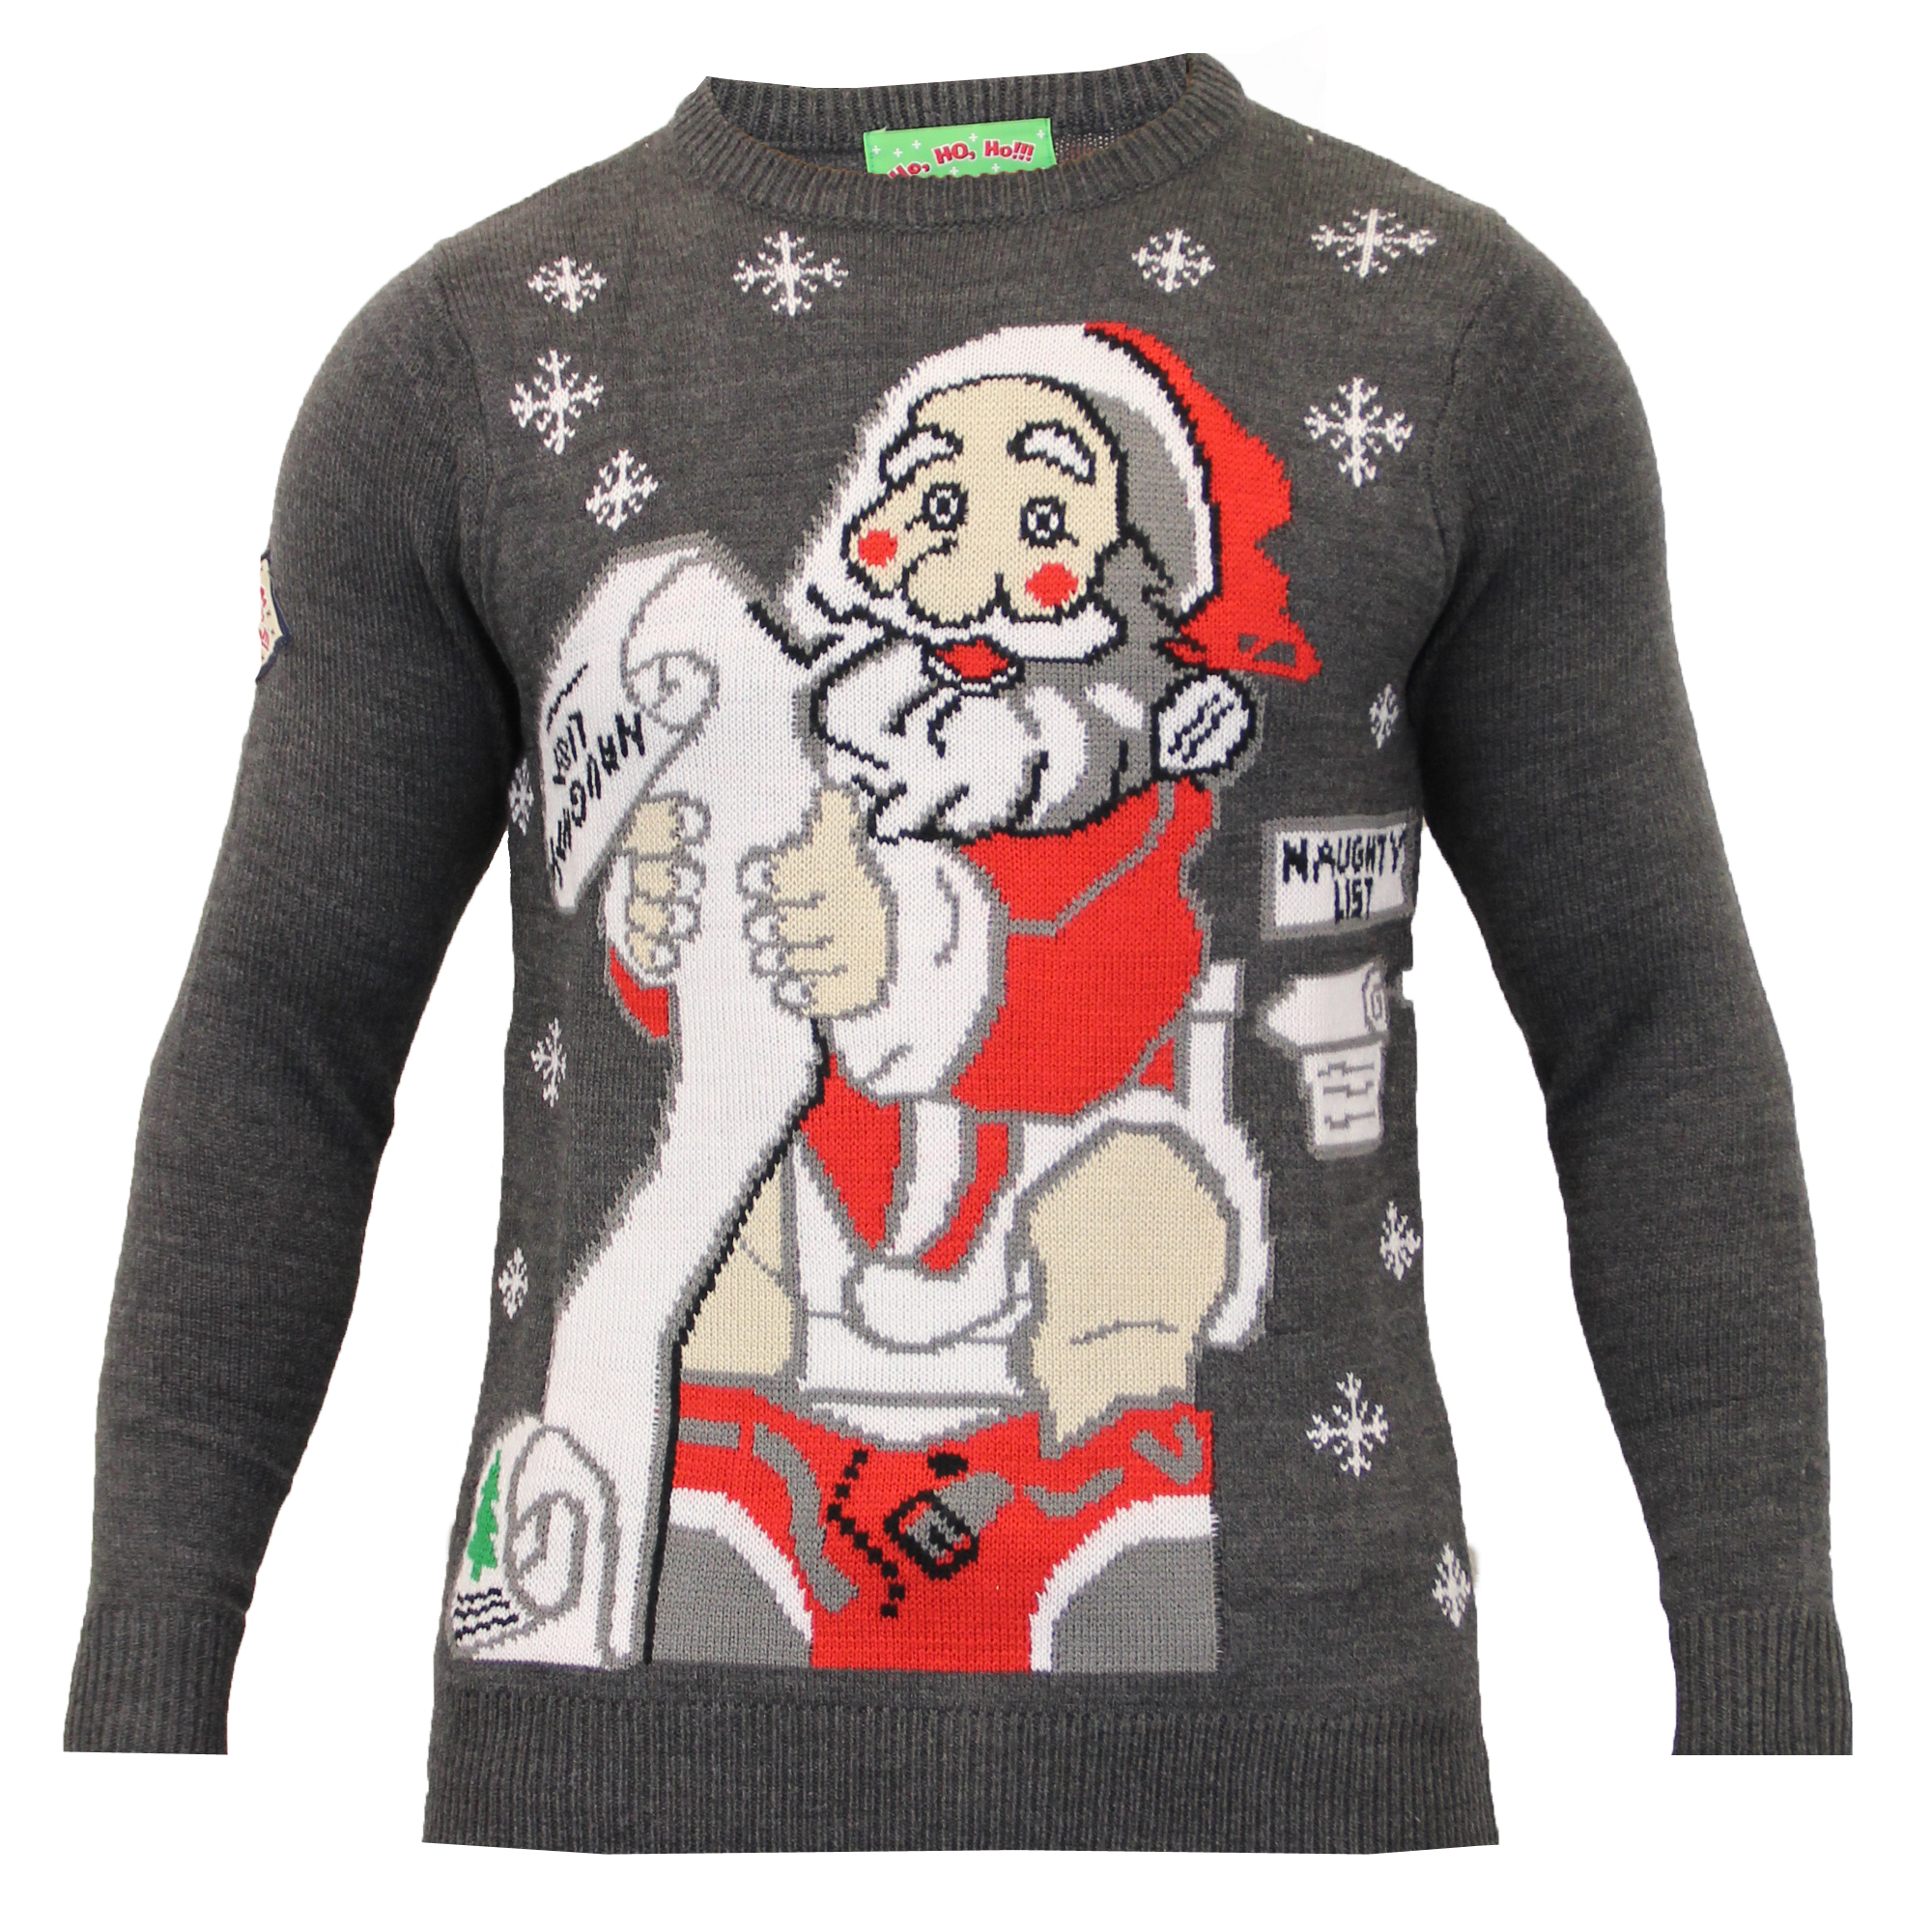 Mens Christmas Jumper Threadbare Xmas Knitted Snowman Santa Novelty Sweater N...